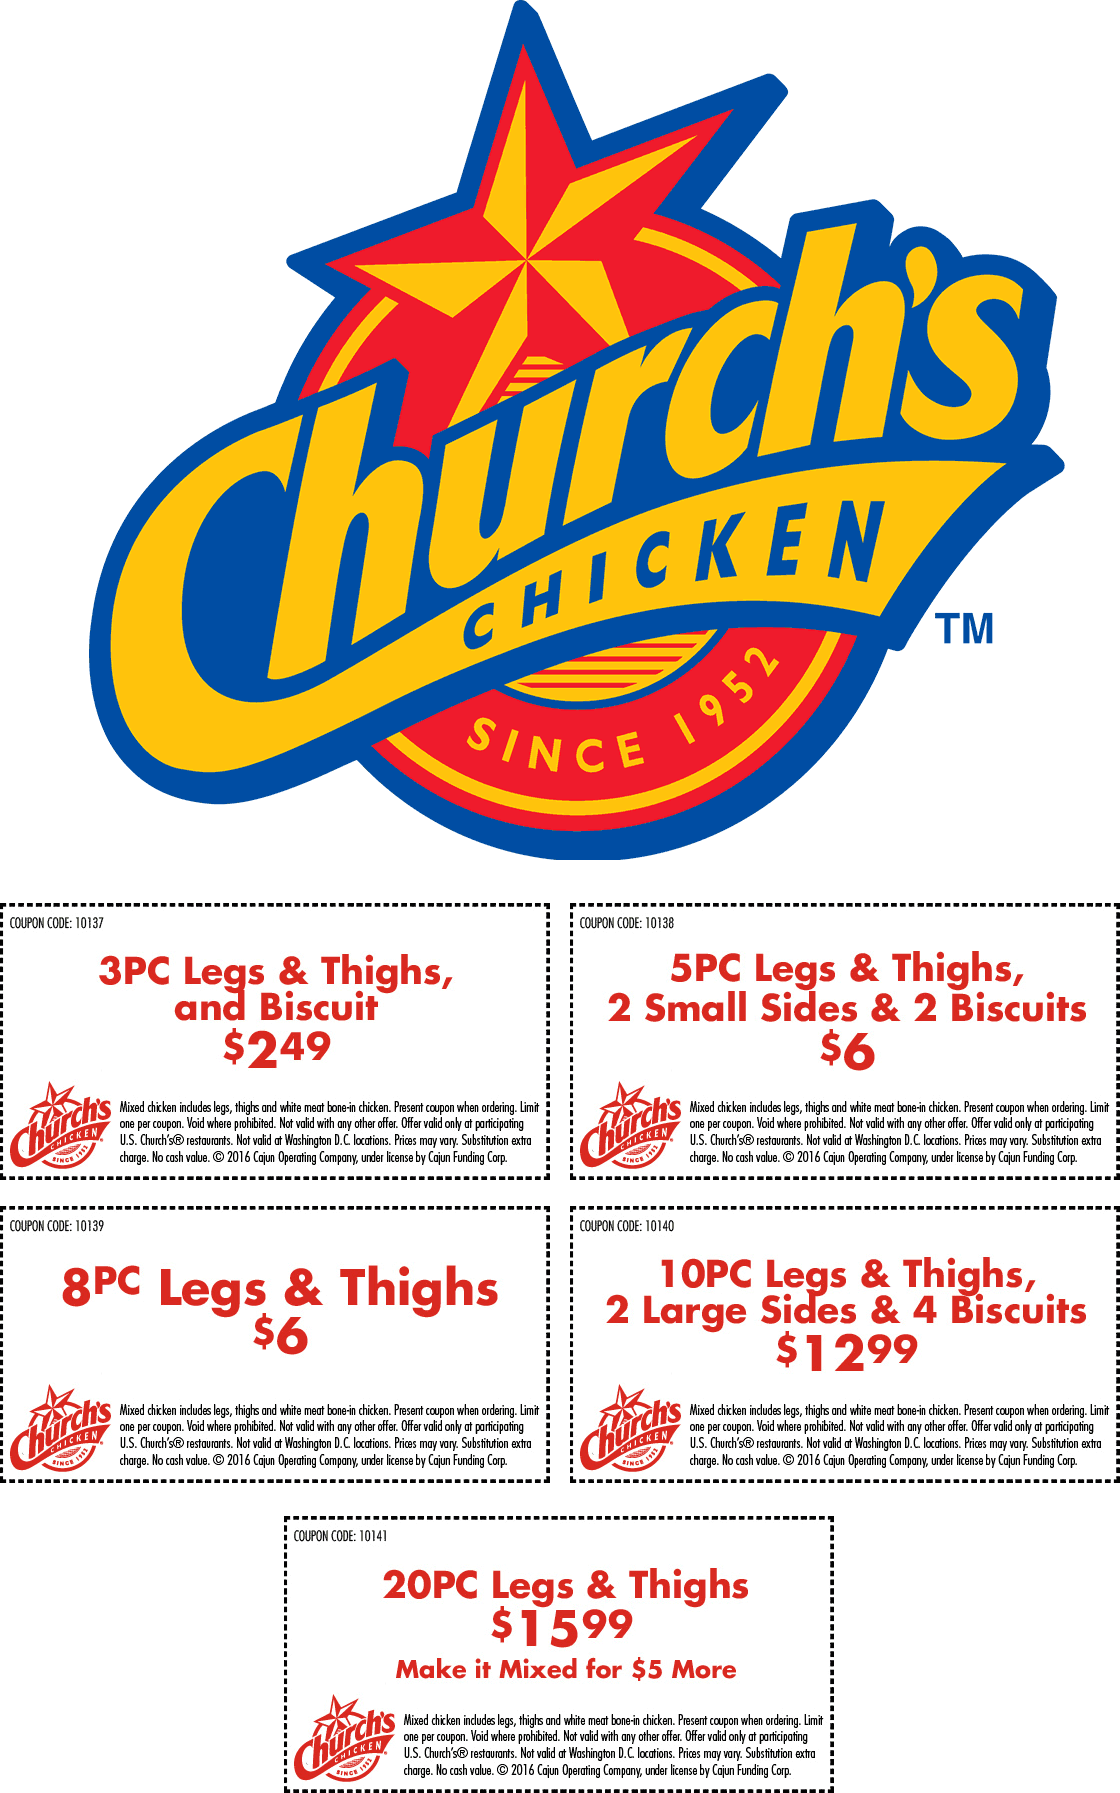 Churchs Chicken Coupon October 2017 5pc + 2 sides + 2 biscuits = $6 & more at Churchs Chicken